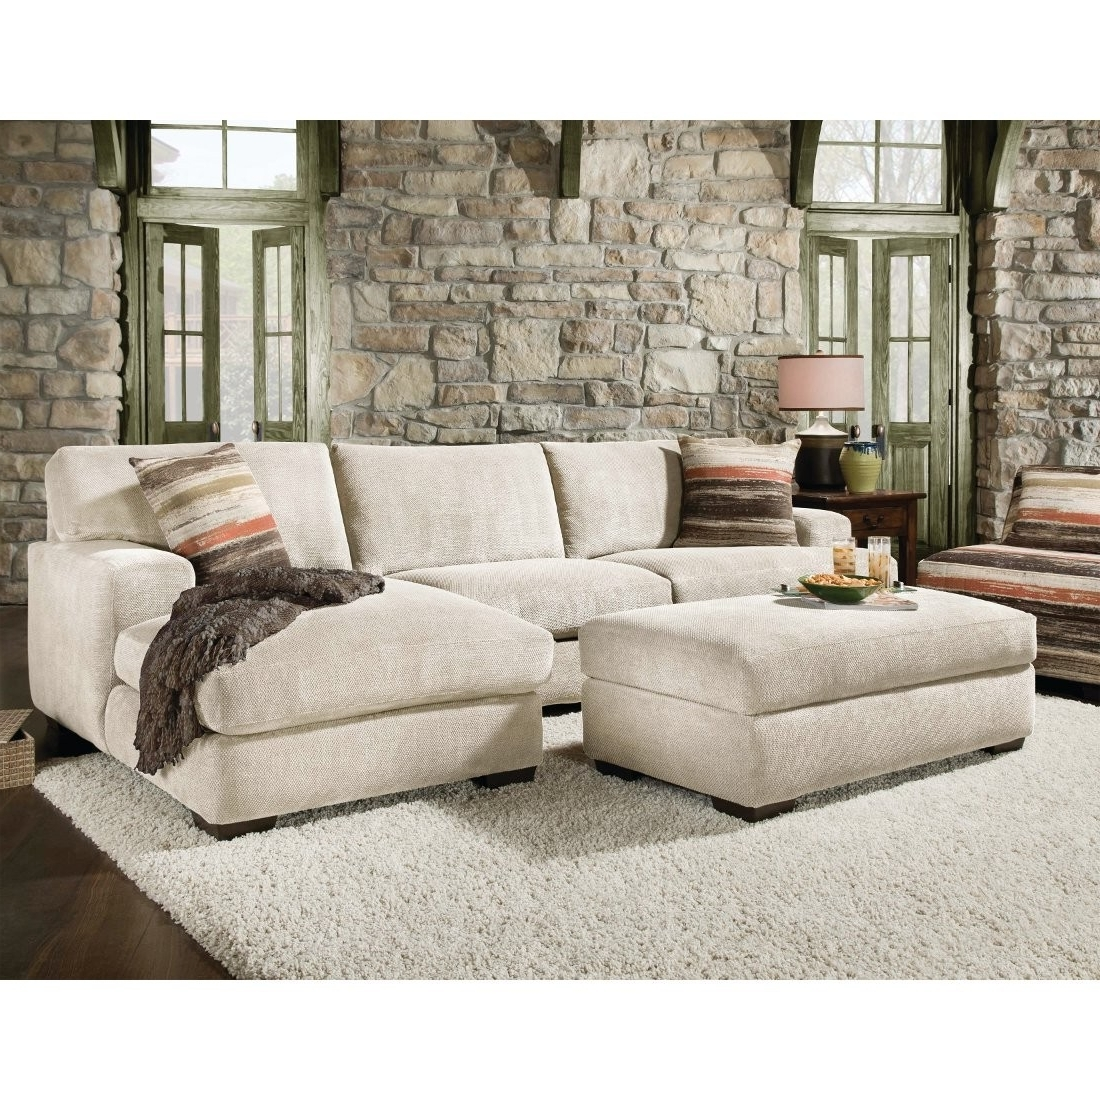 Small Sectional Sofas With Chaise And Ottoman In Recent Oversized Sectional Sofa Idea — Awesome Homes : Super Comfortable (View 7 of 20)